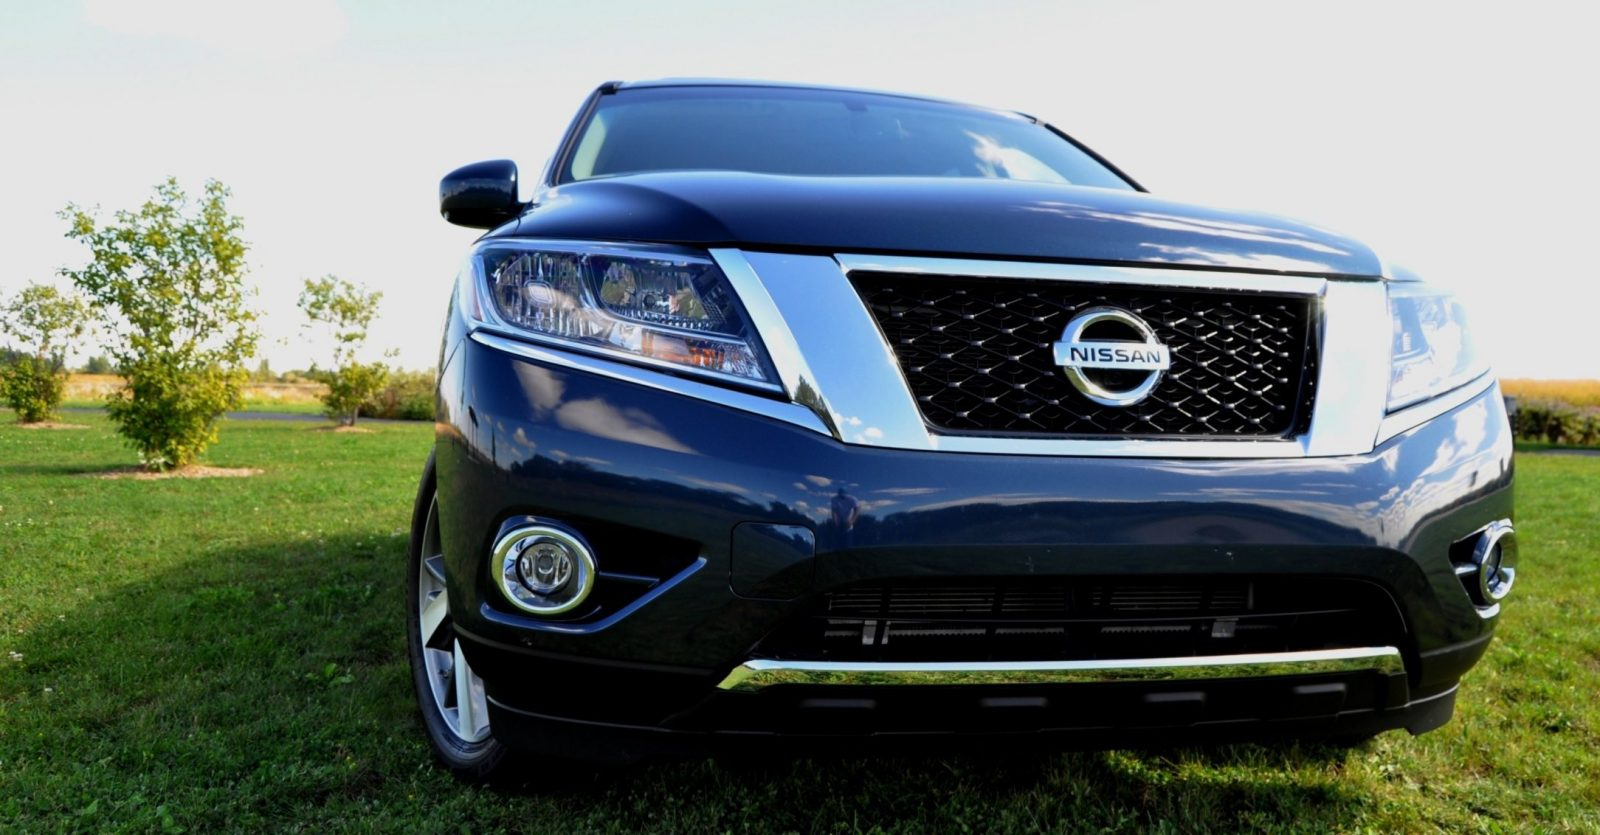 2014 Nissan Pathfinder Platinum Inside and Out85